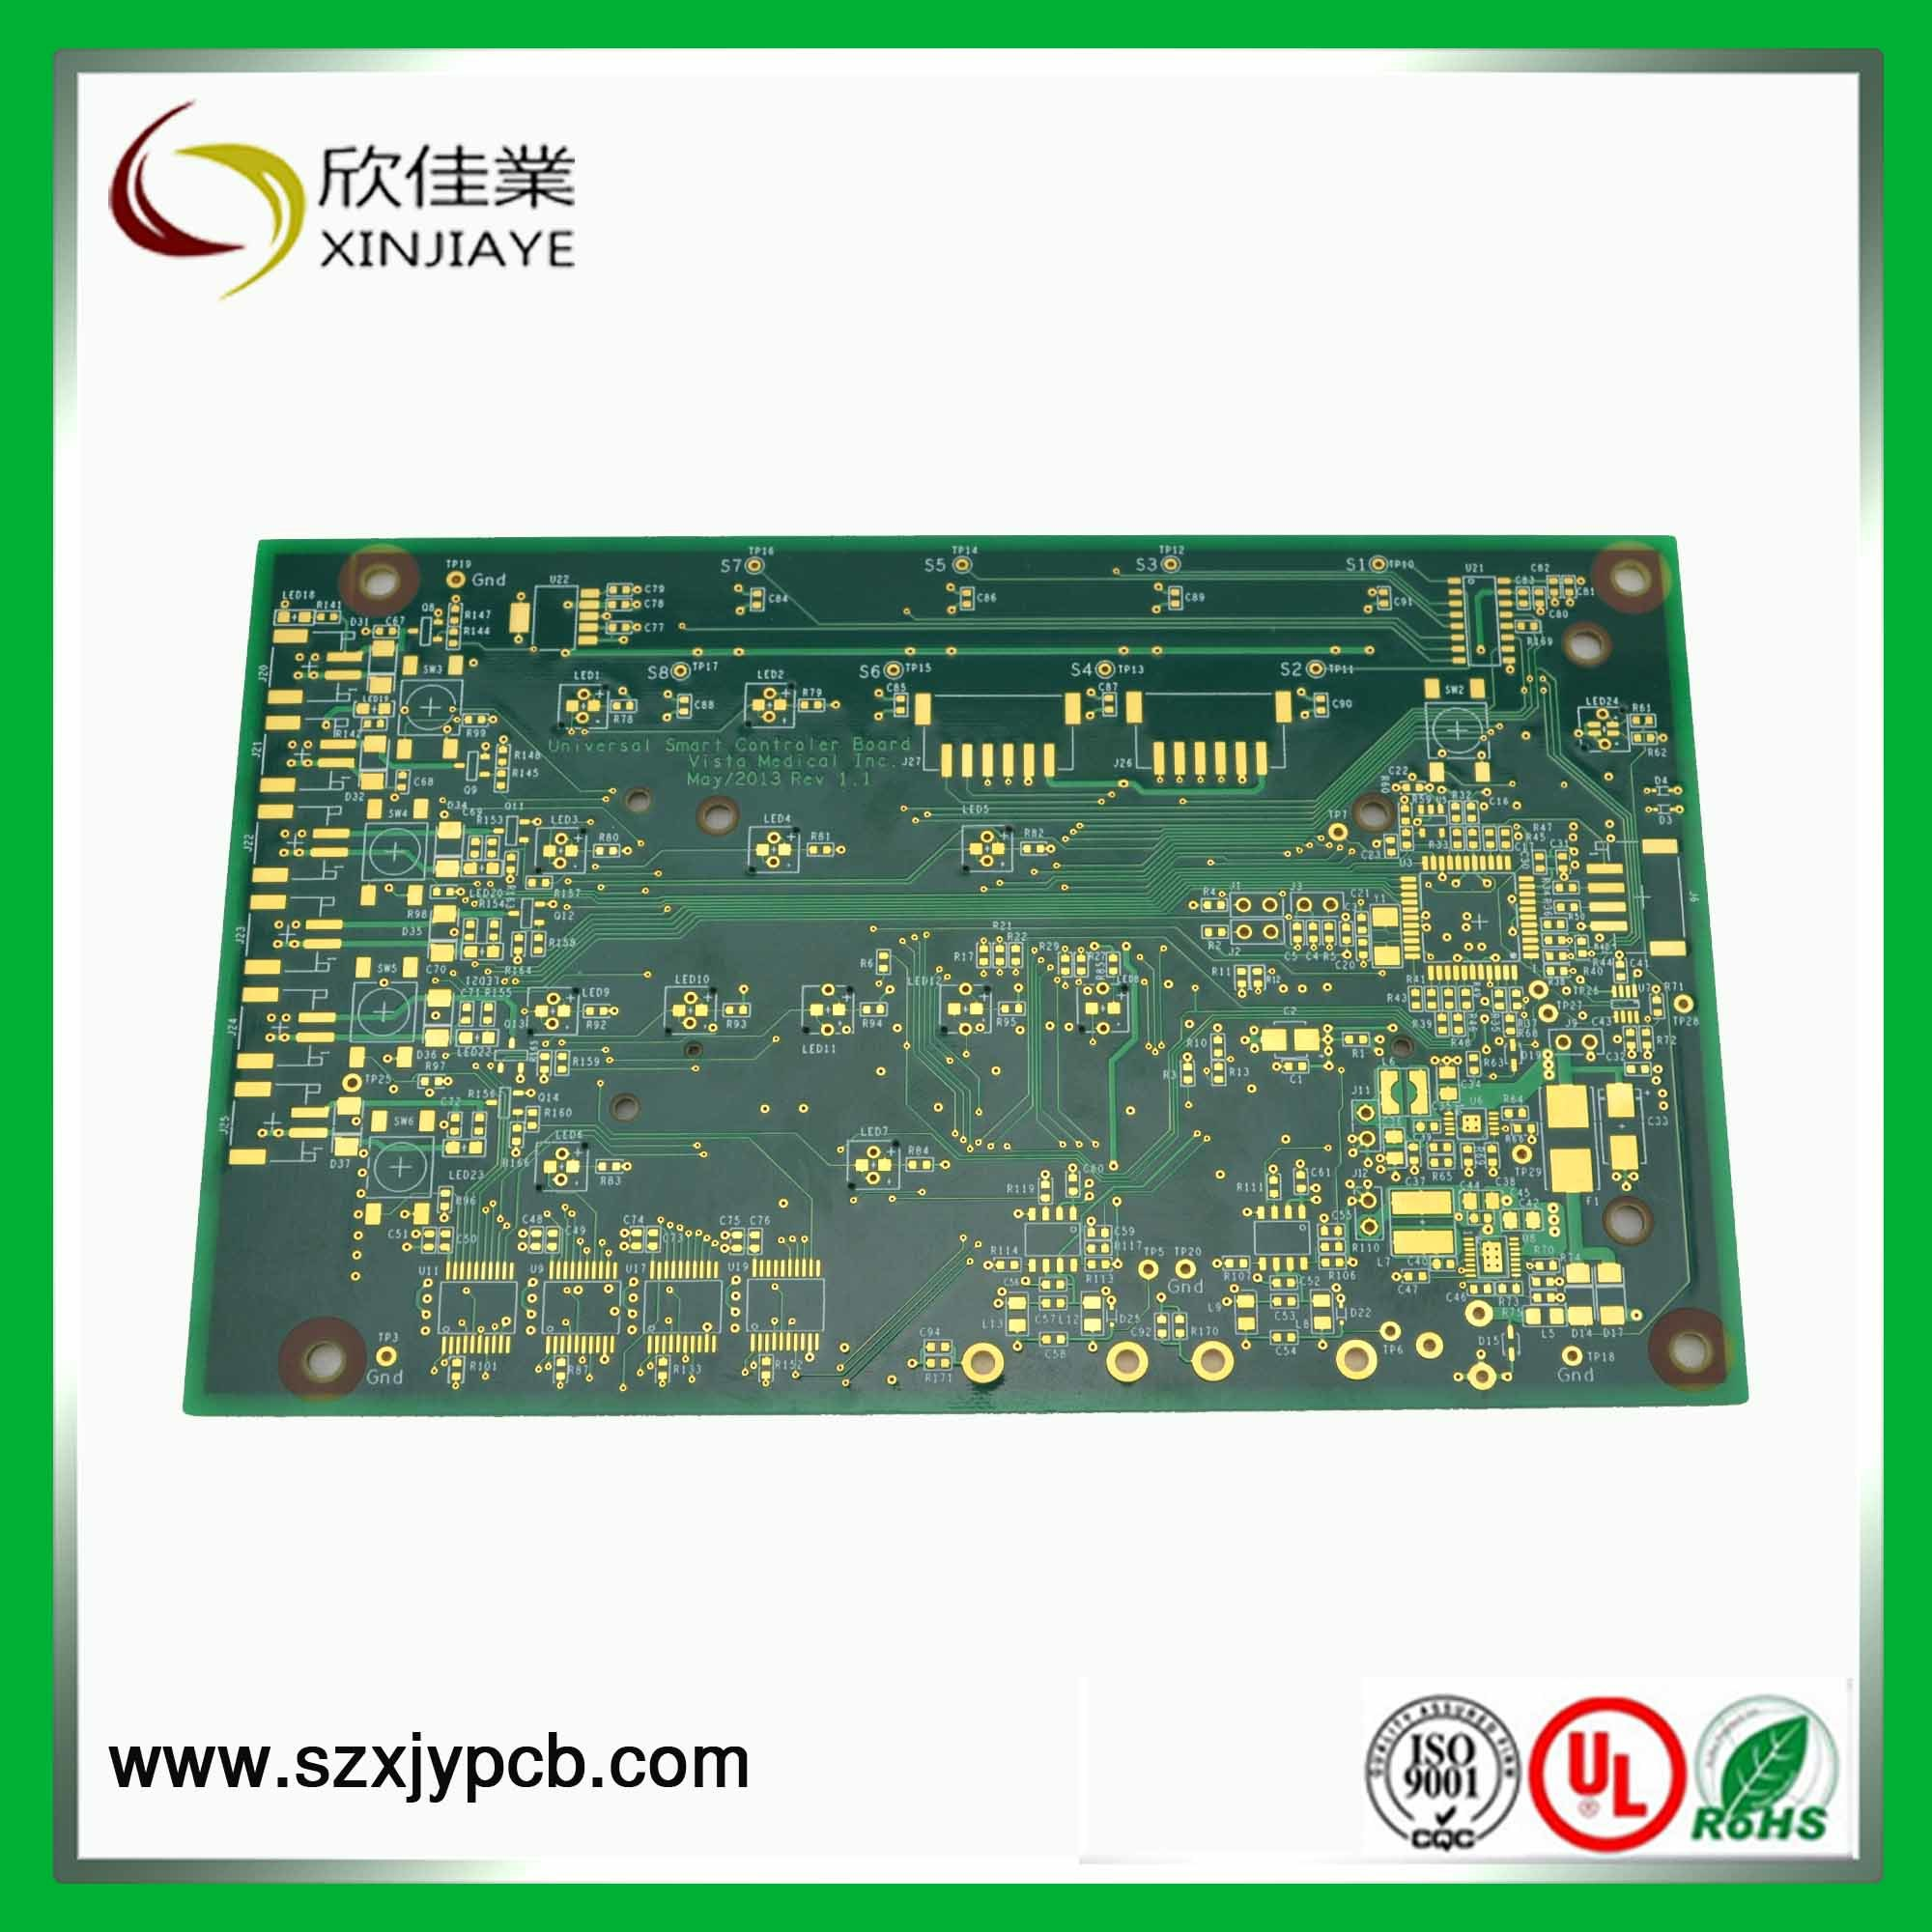 China 12v Ups Printed Circuit Board Pcb With Multilayer Aquisition Of Electronic Boards Pcbs And Prototype